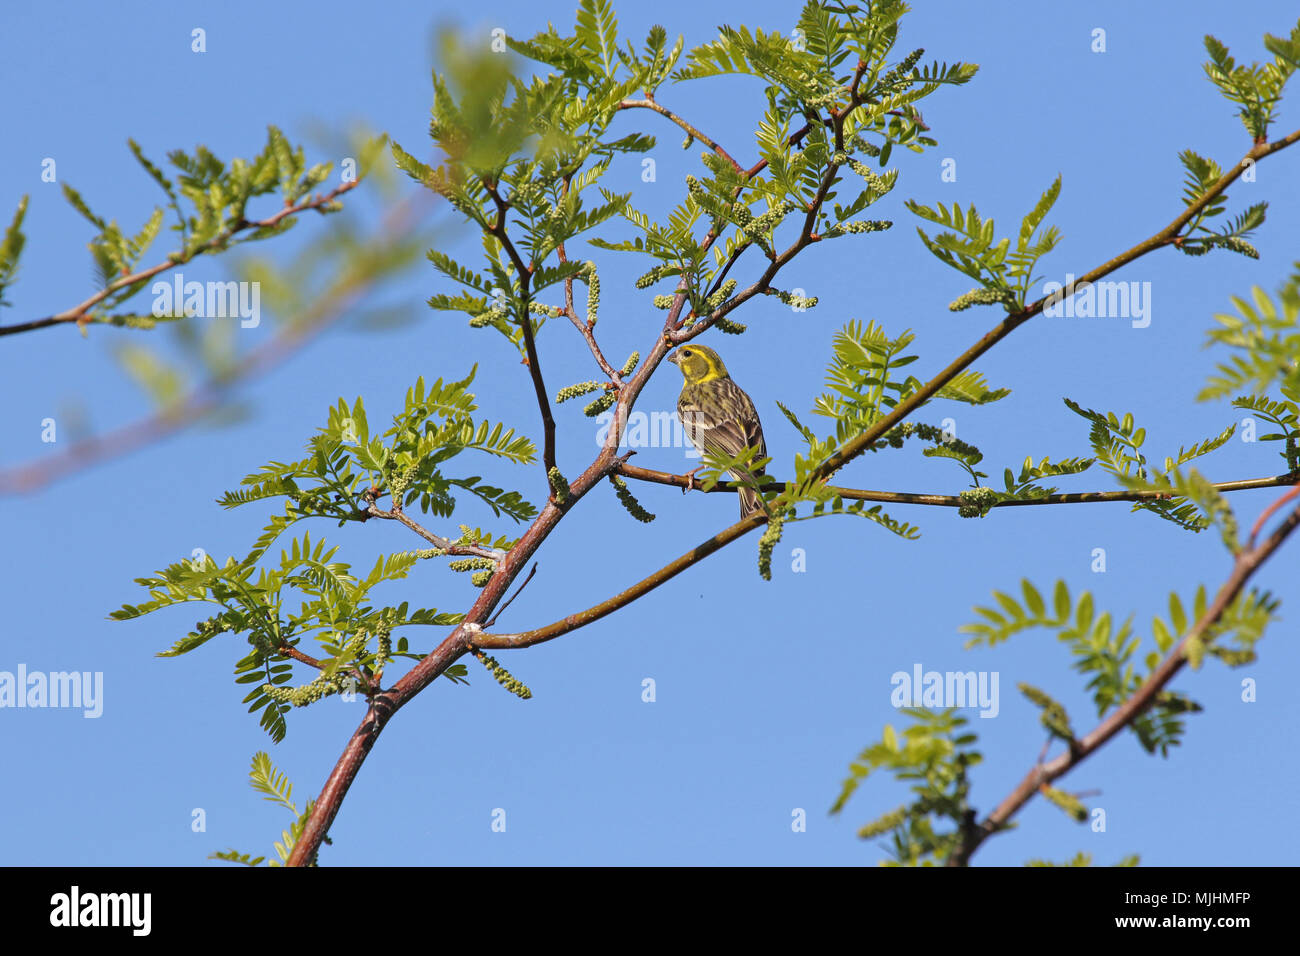 serin bird Latin name serinus serinus feeding on buds in an acacia tree in spring in Italy - Stock Image